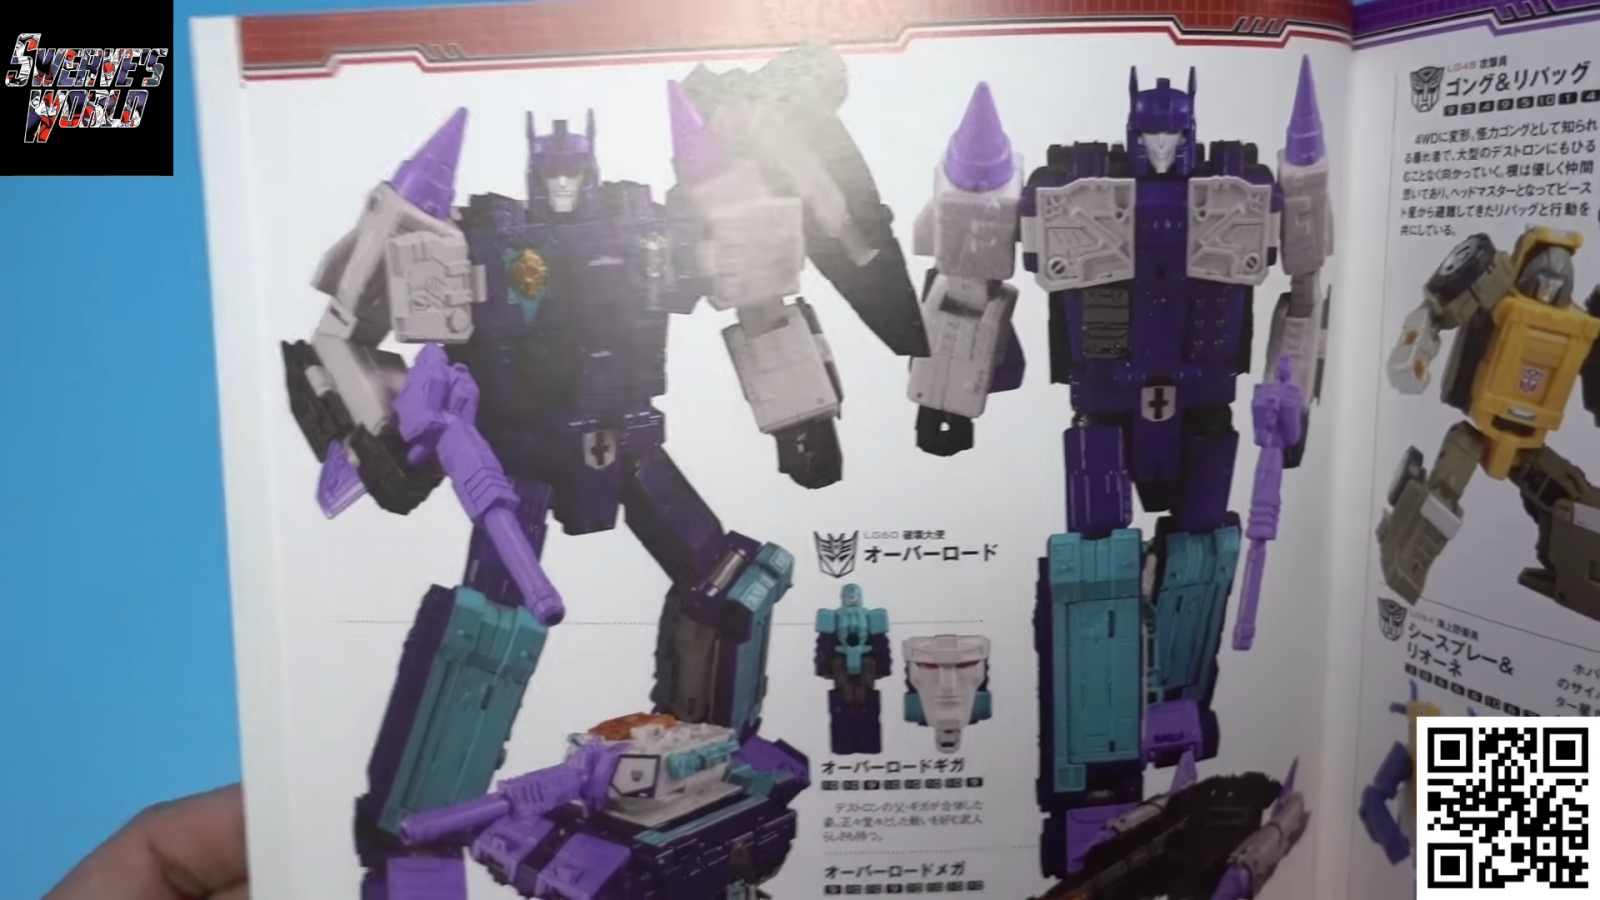 Transformers News: Re: Tayo Tosho/HeroX Transformers Generations 2018 Cover Revealed and Pre-Orders